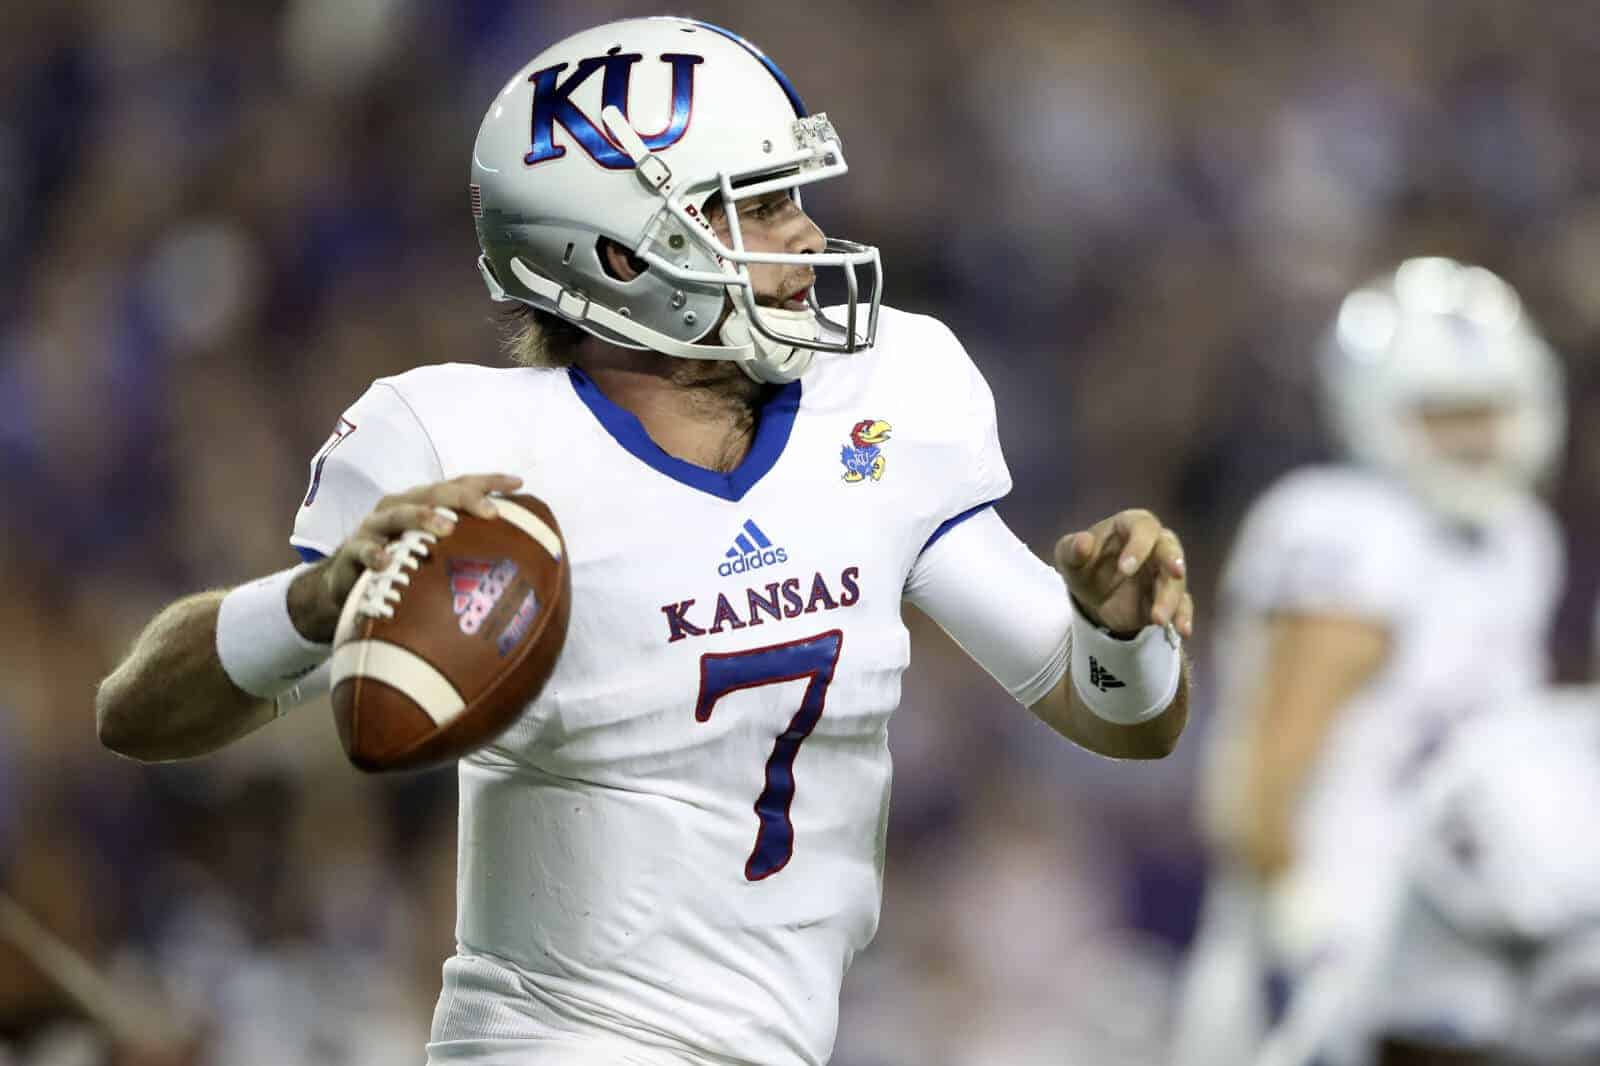 College Football Schedule: Kansas